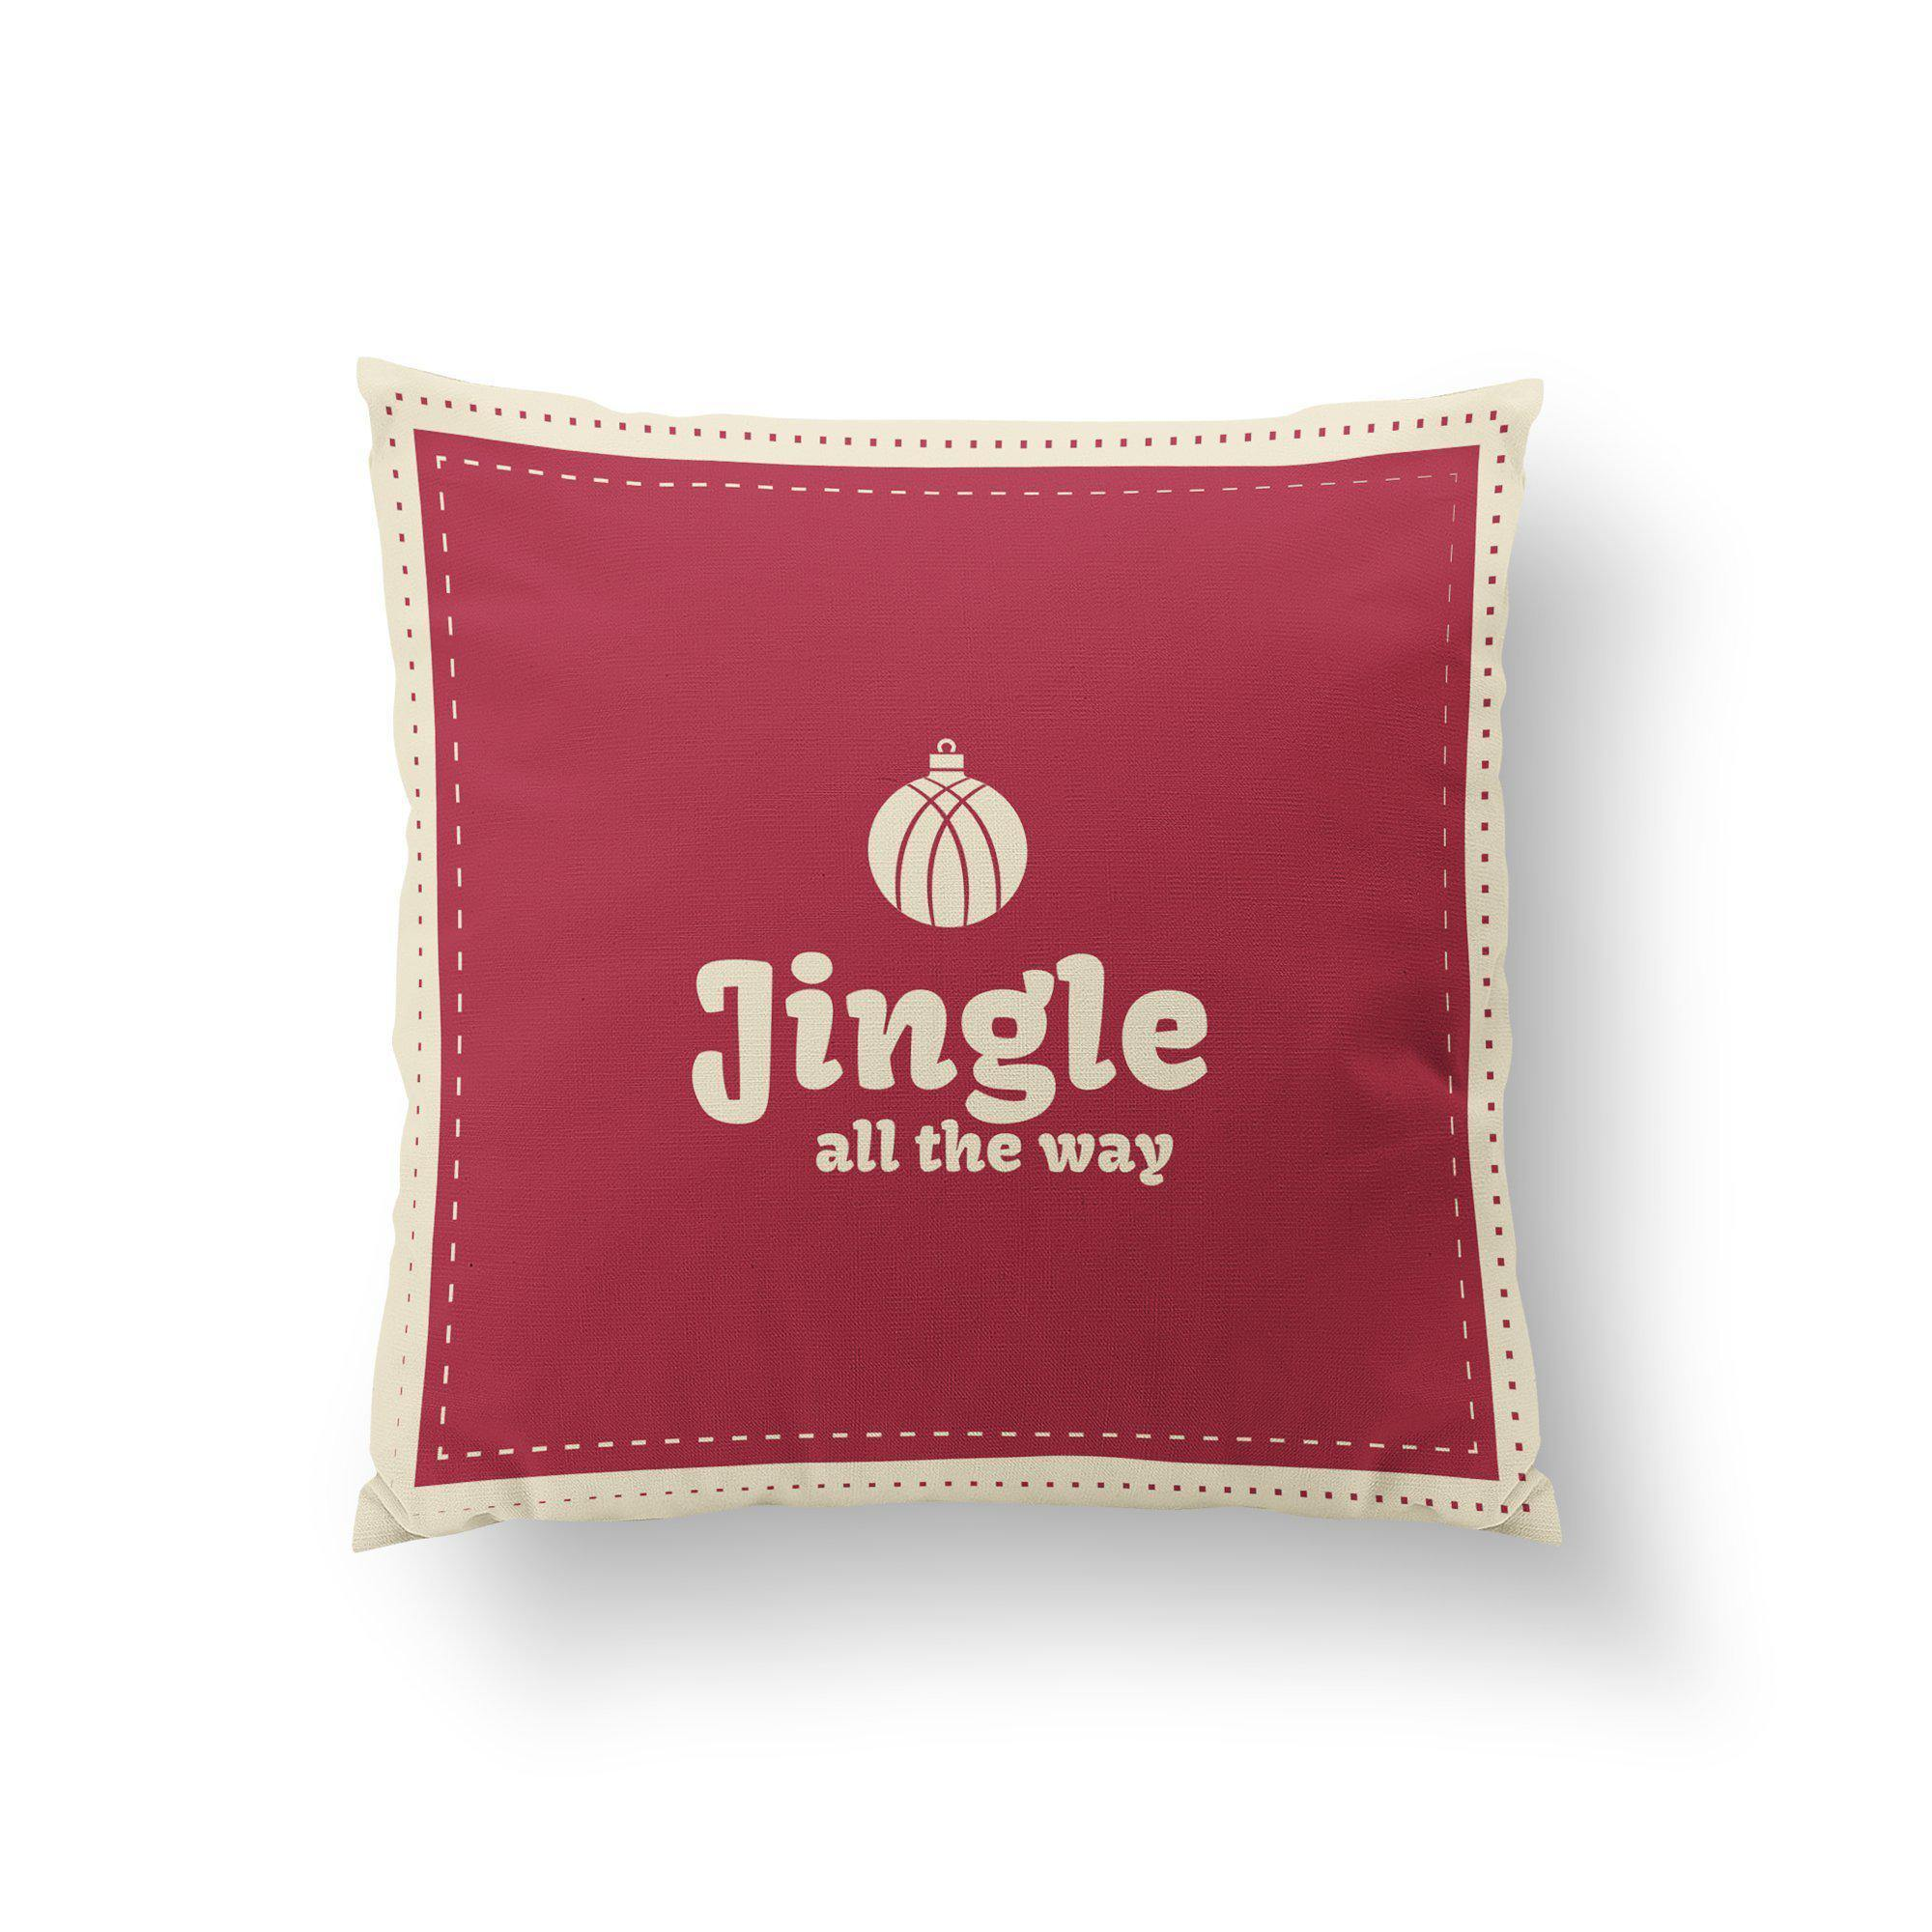 Jingle All the Way Christmas Pillow - Pillow Covers - W.FRANCIS